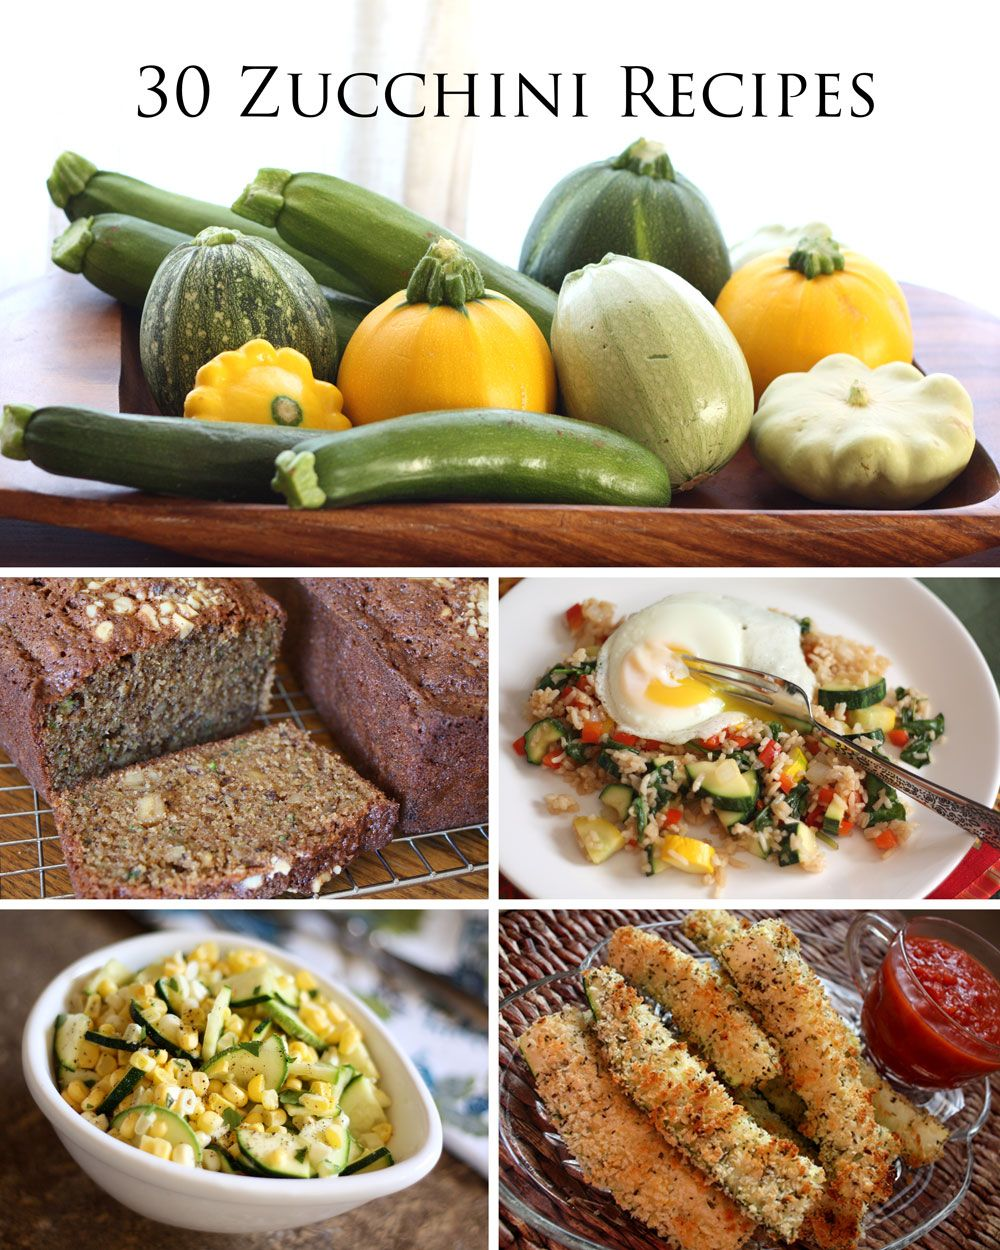 30 Side Dishes And Desserts To Try: Summer Squash: 30 Zucchini Recipes